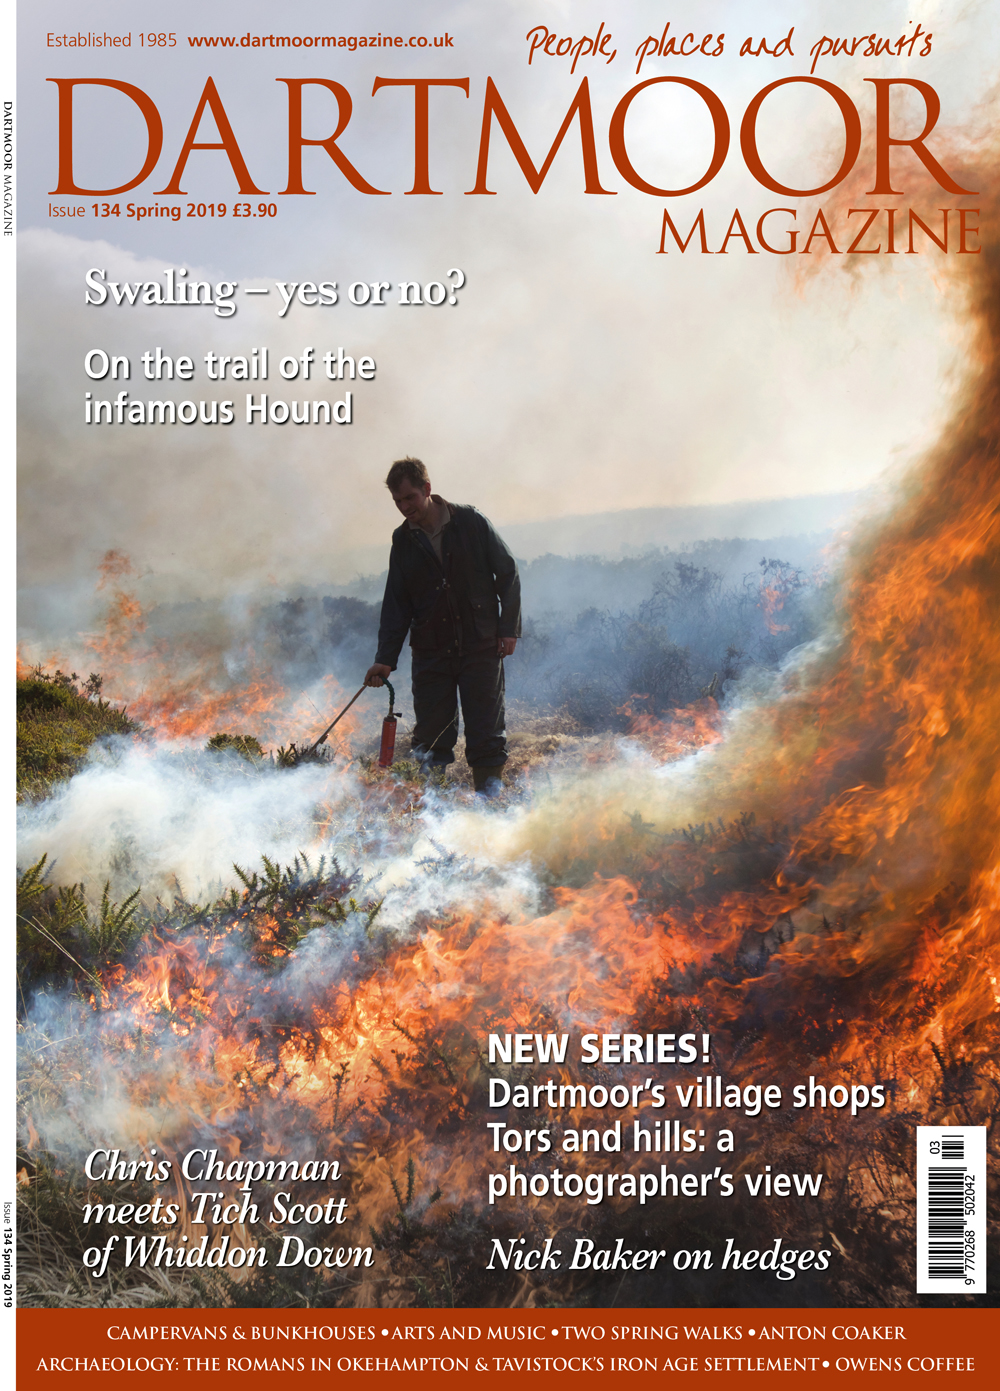 Front cover image of the March & April issue of Dartmoor Magazine